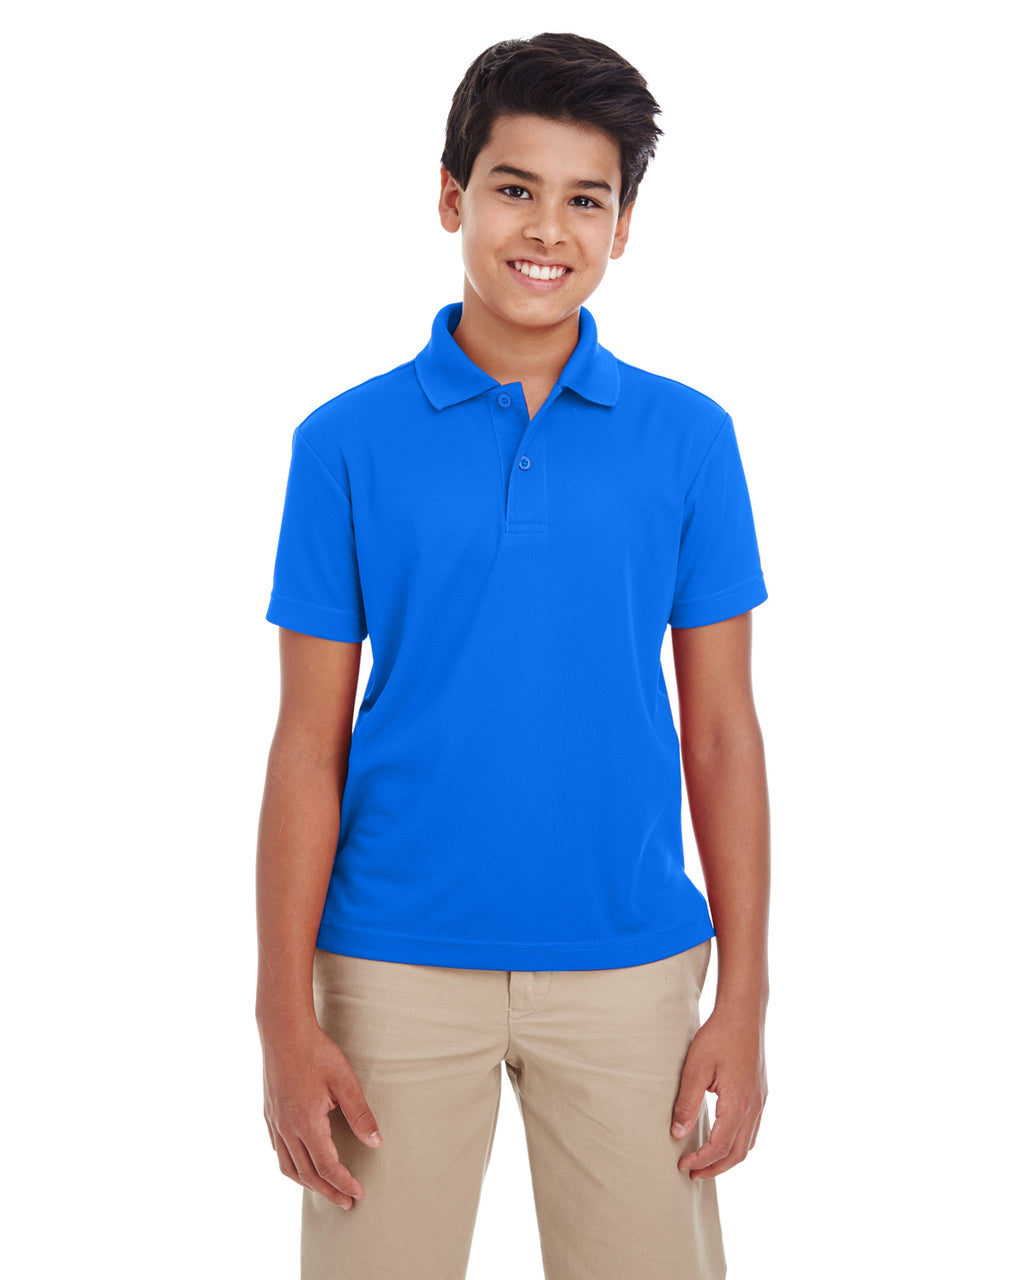 88181Y - Core 365 Youth Origin Performance Piqué Polo